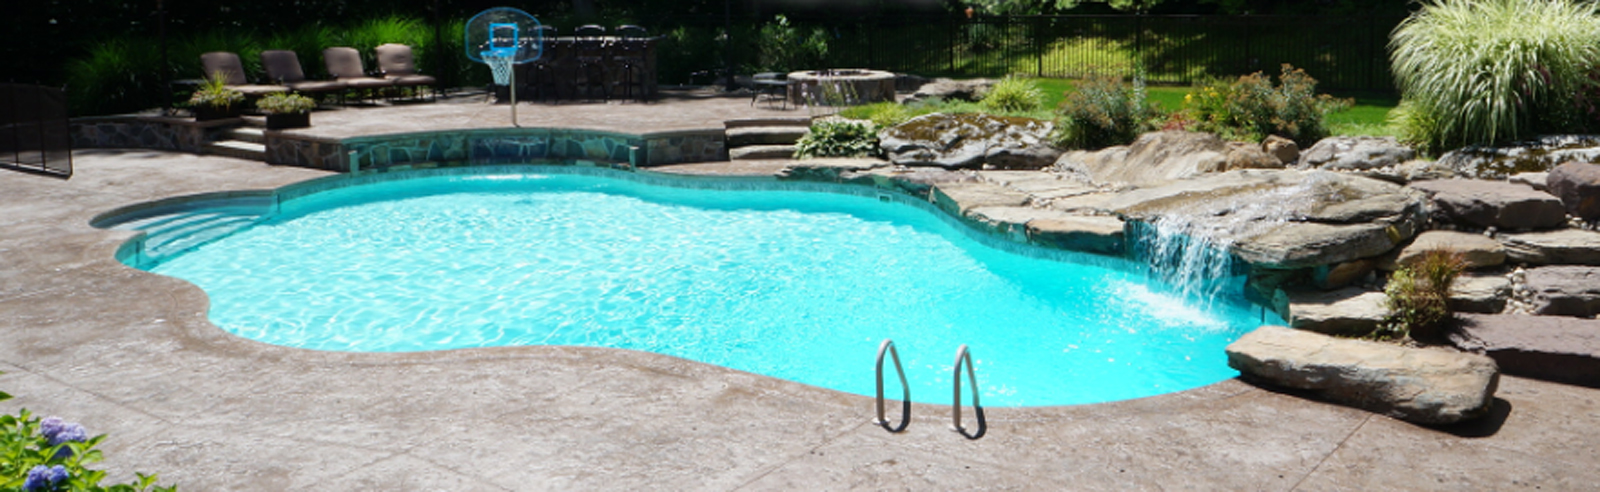 Swimming Pools Add Value To A Home How Much Is Up For Debate Newstimes